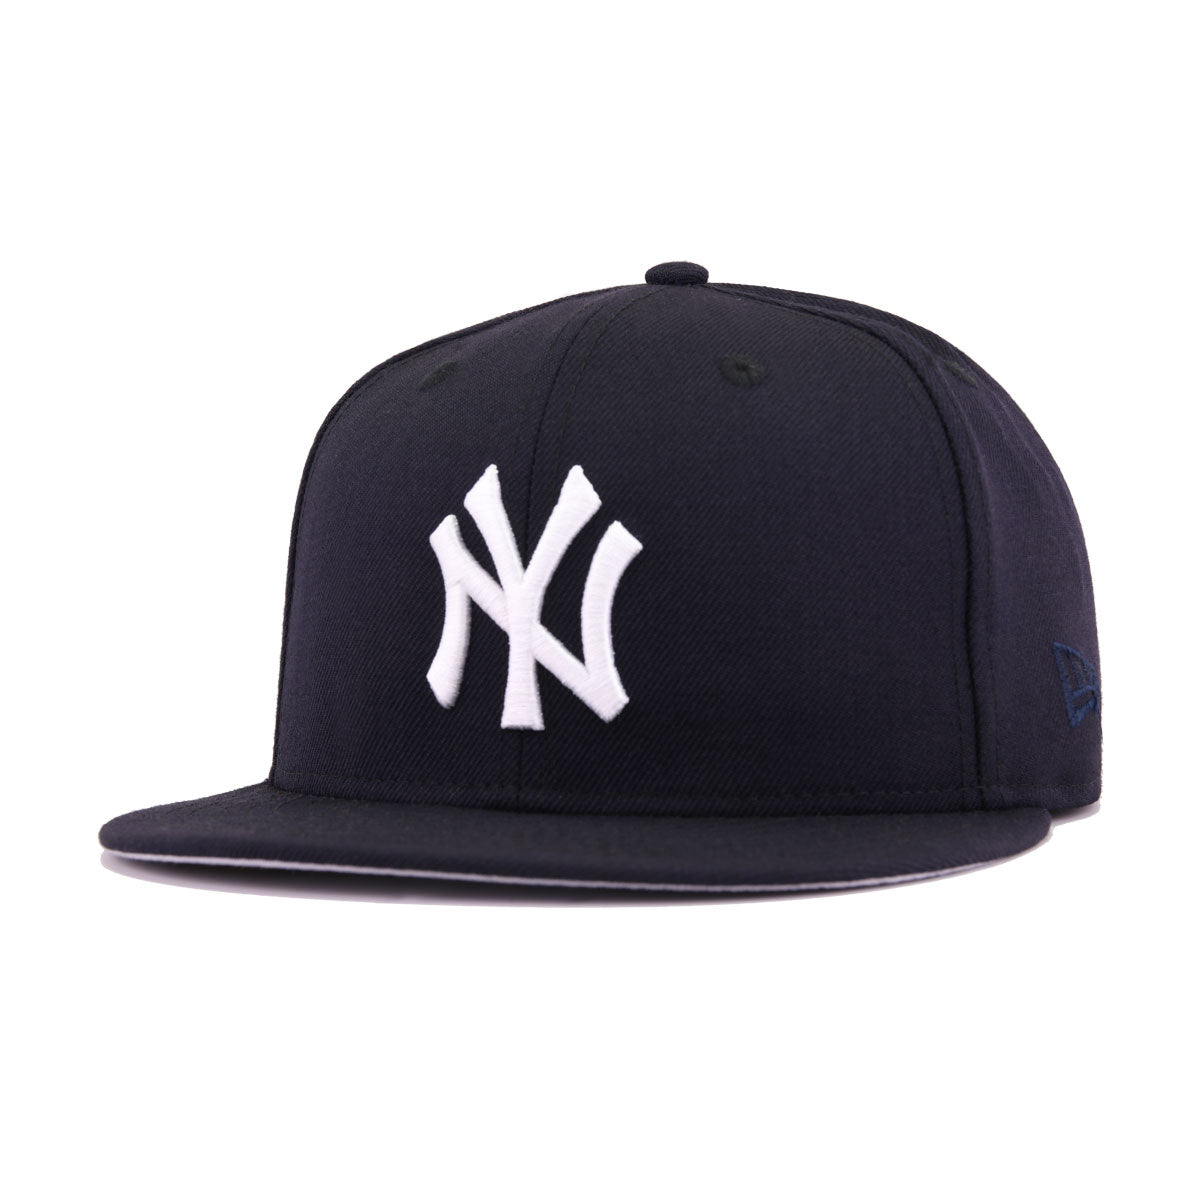 09a94be8 New York Yankees Navy 2008 All Star Game New Era 59Fifty Fitted